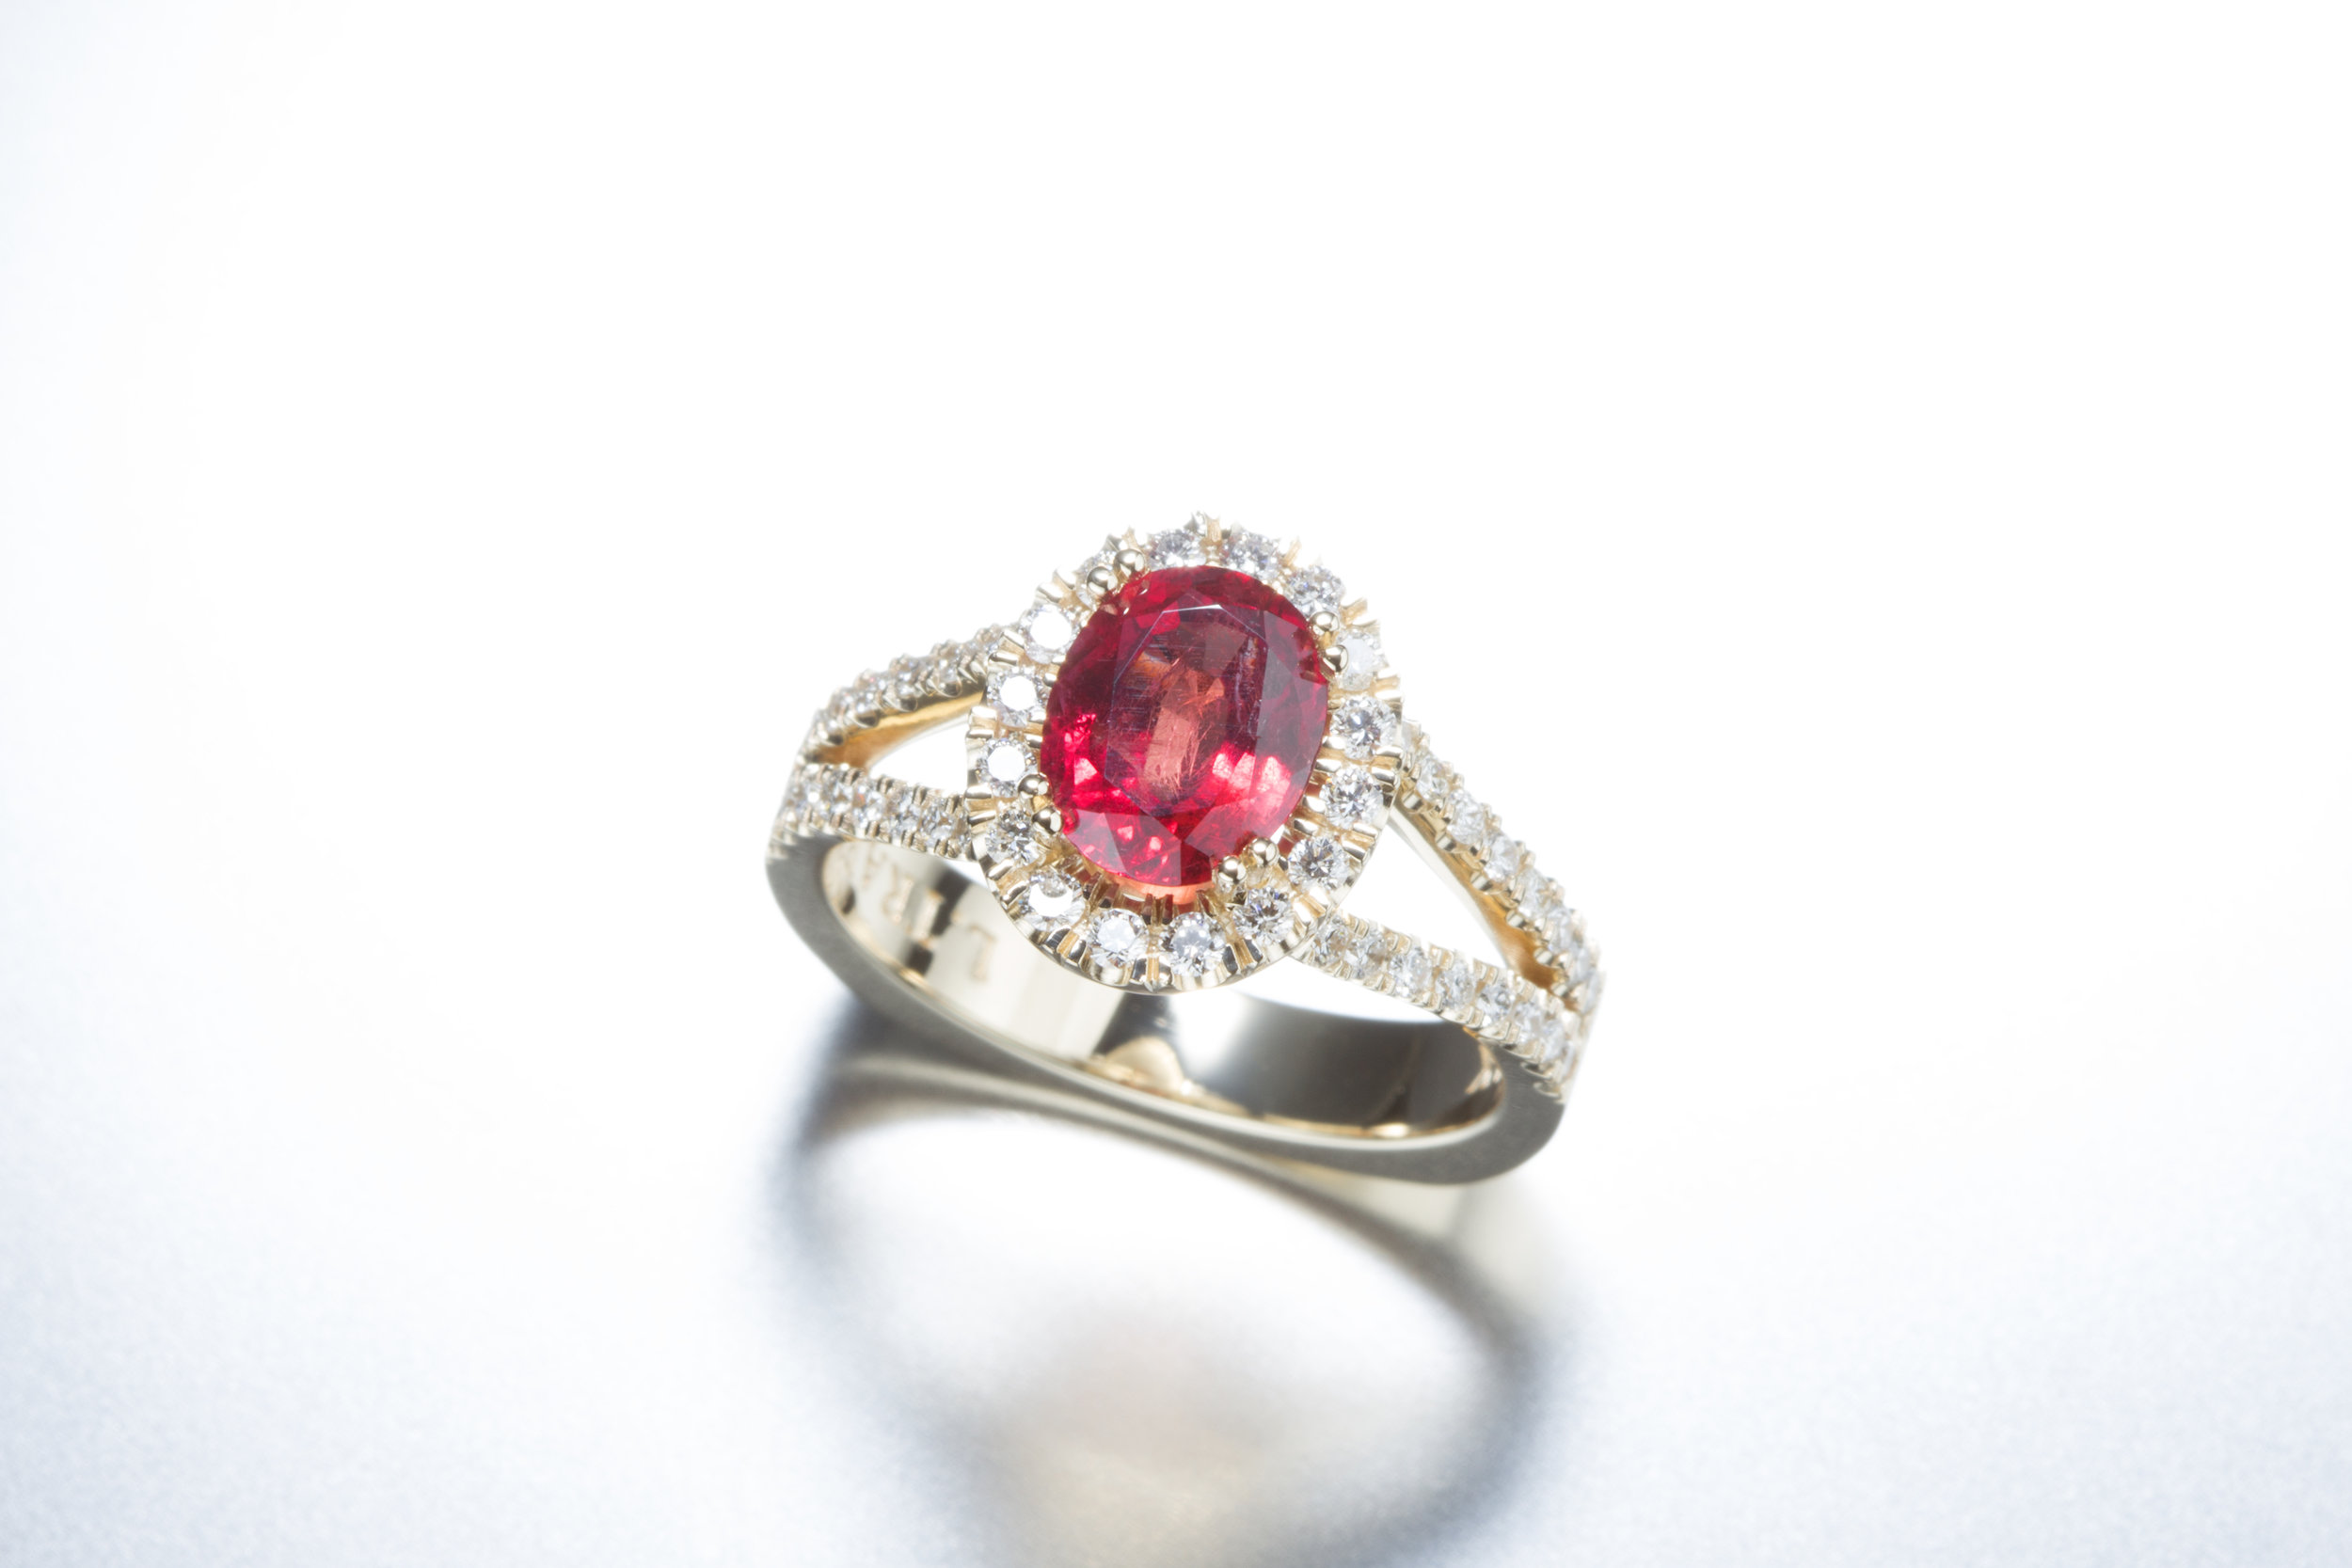 Ruby and Diamond 14K Yellow Gold - A ruby ring that pops with color. Conflict-free and genuine diamonds line the yellow gold band.